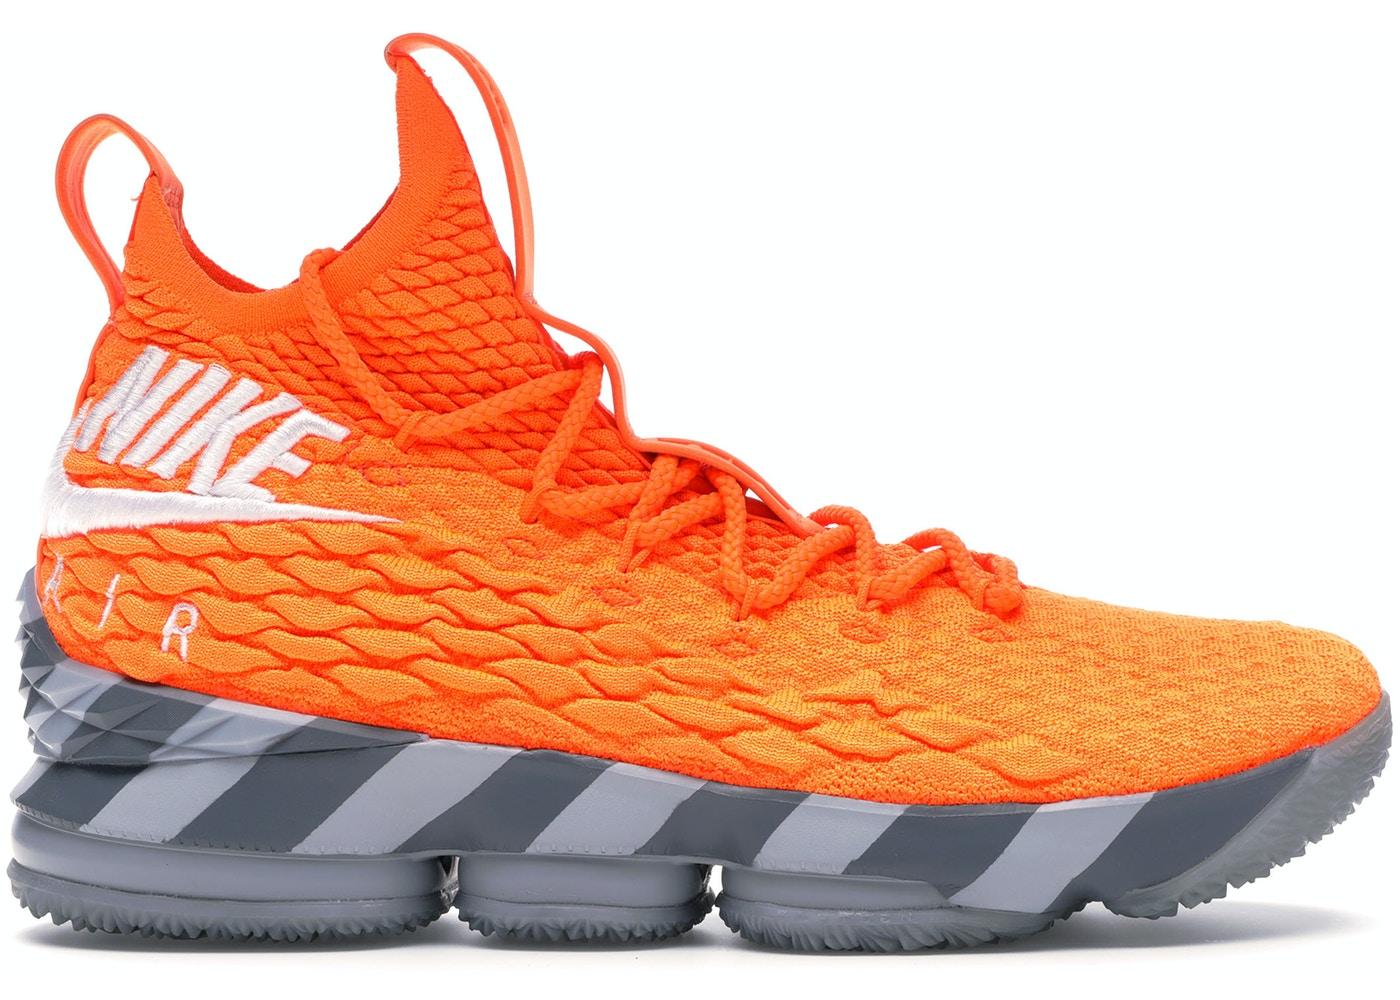 reputable site c6e01 acad3 Nike LeBron 15 Shoes - Total Sold